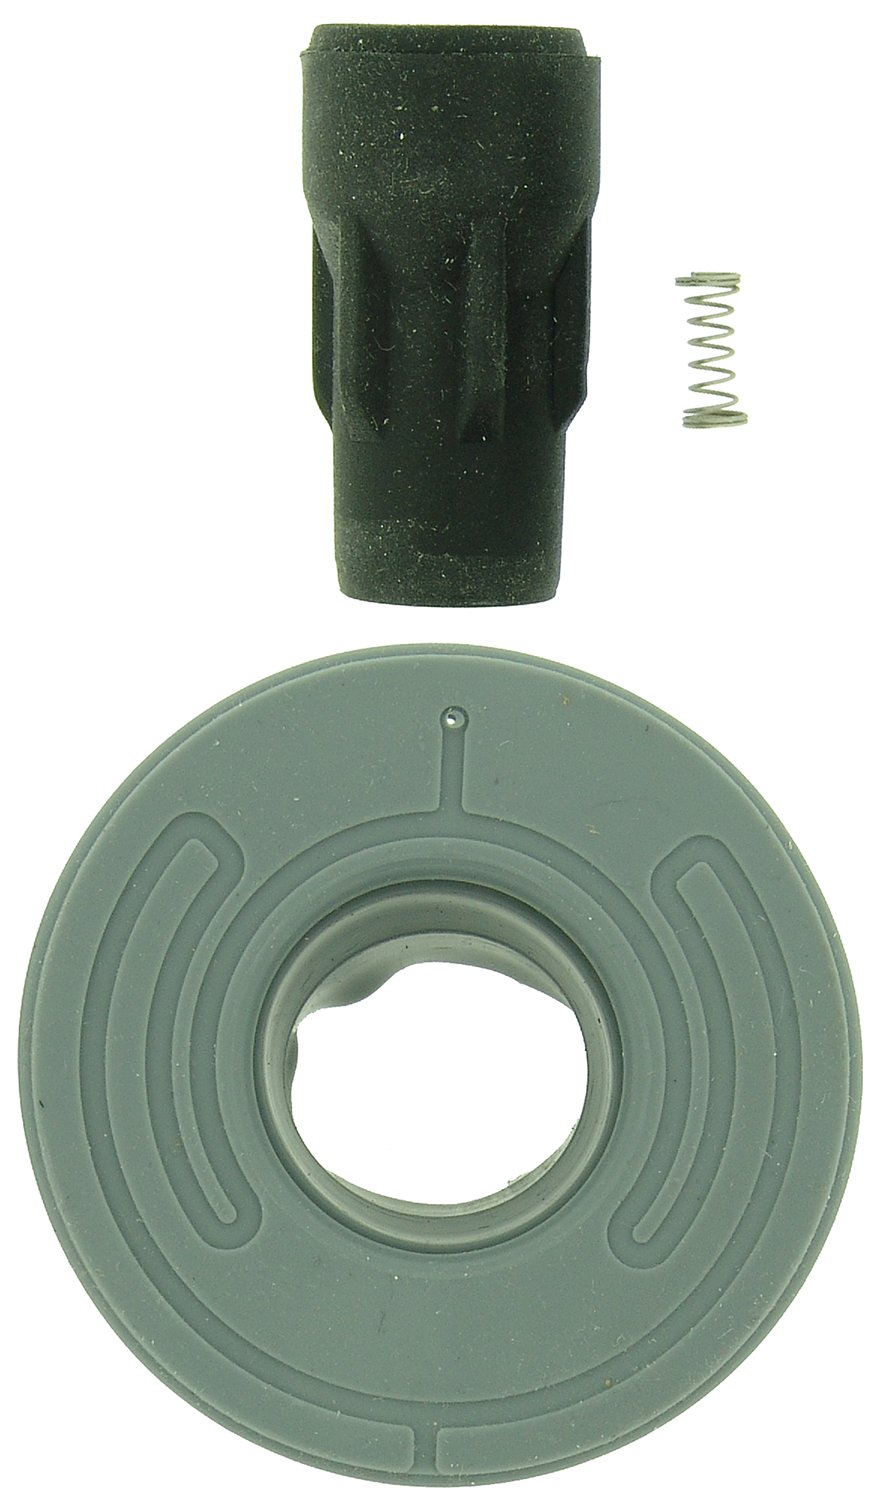 Standard Motor Products SPP158E Spark Plug Boot